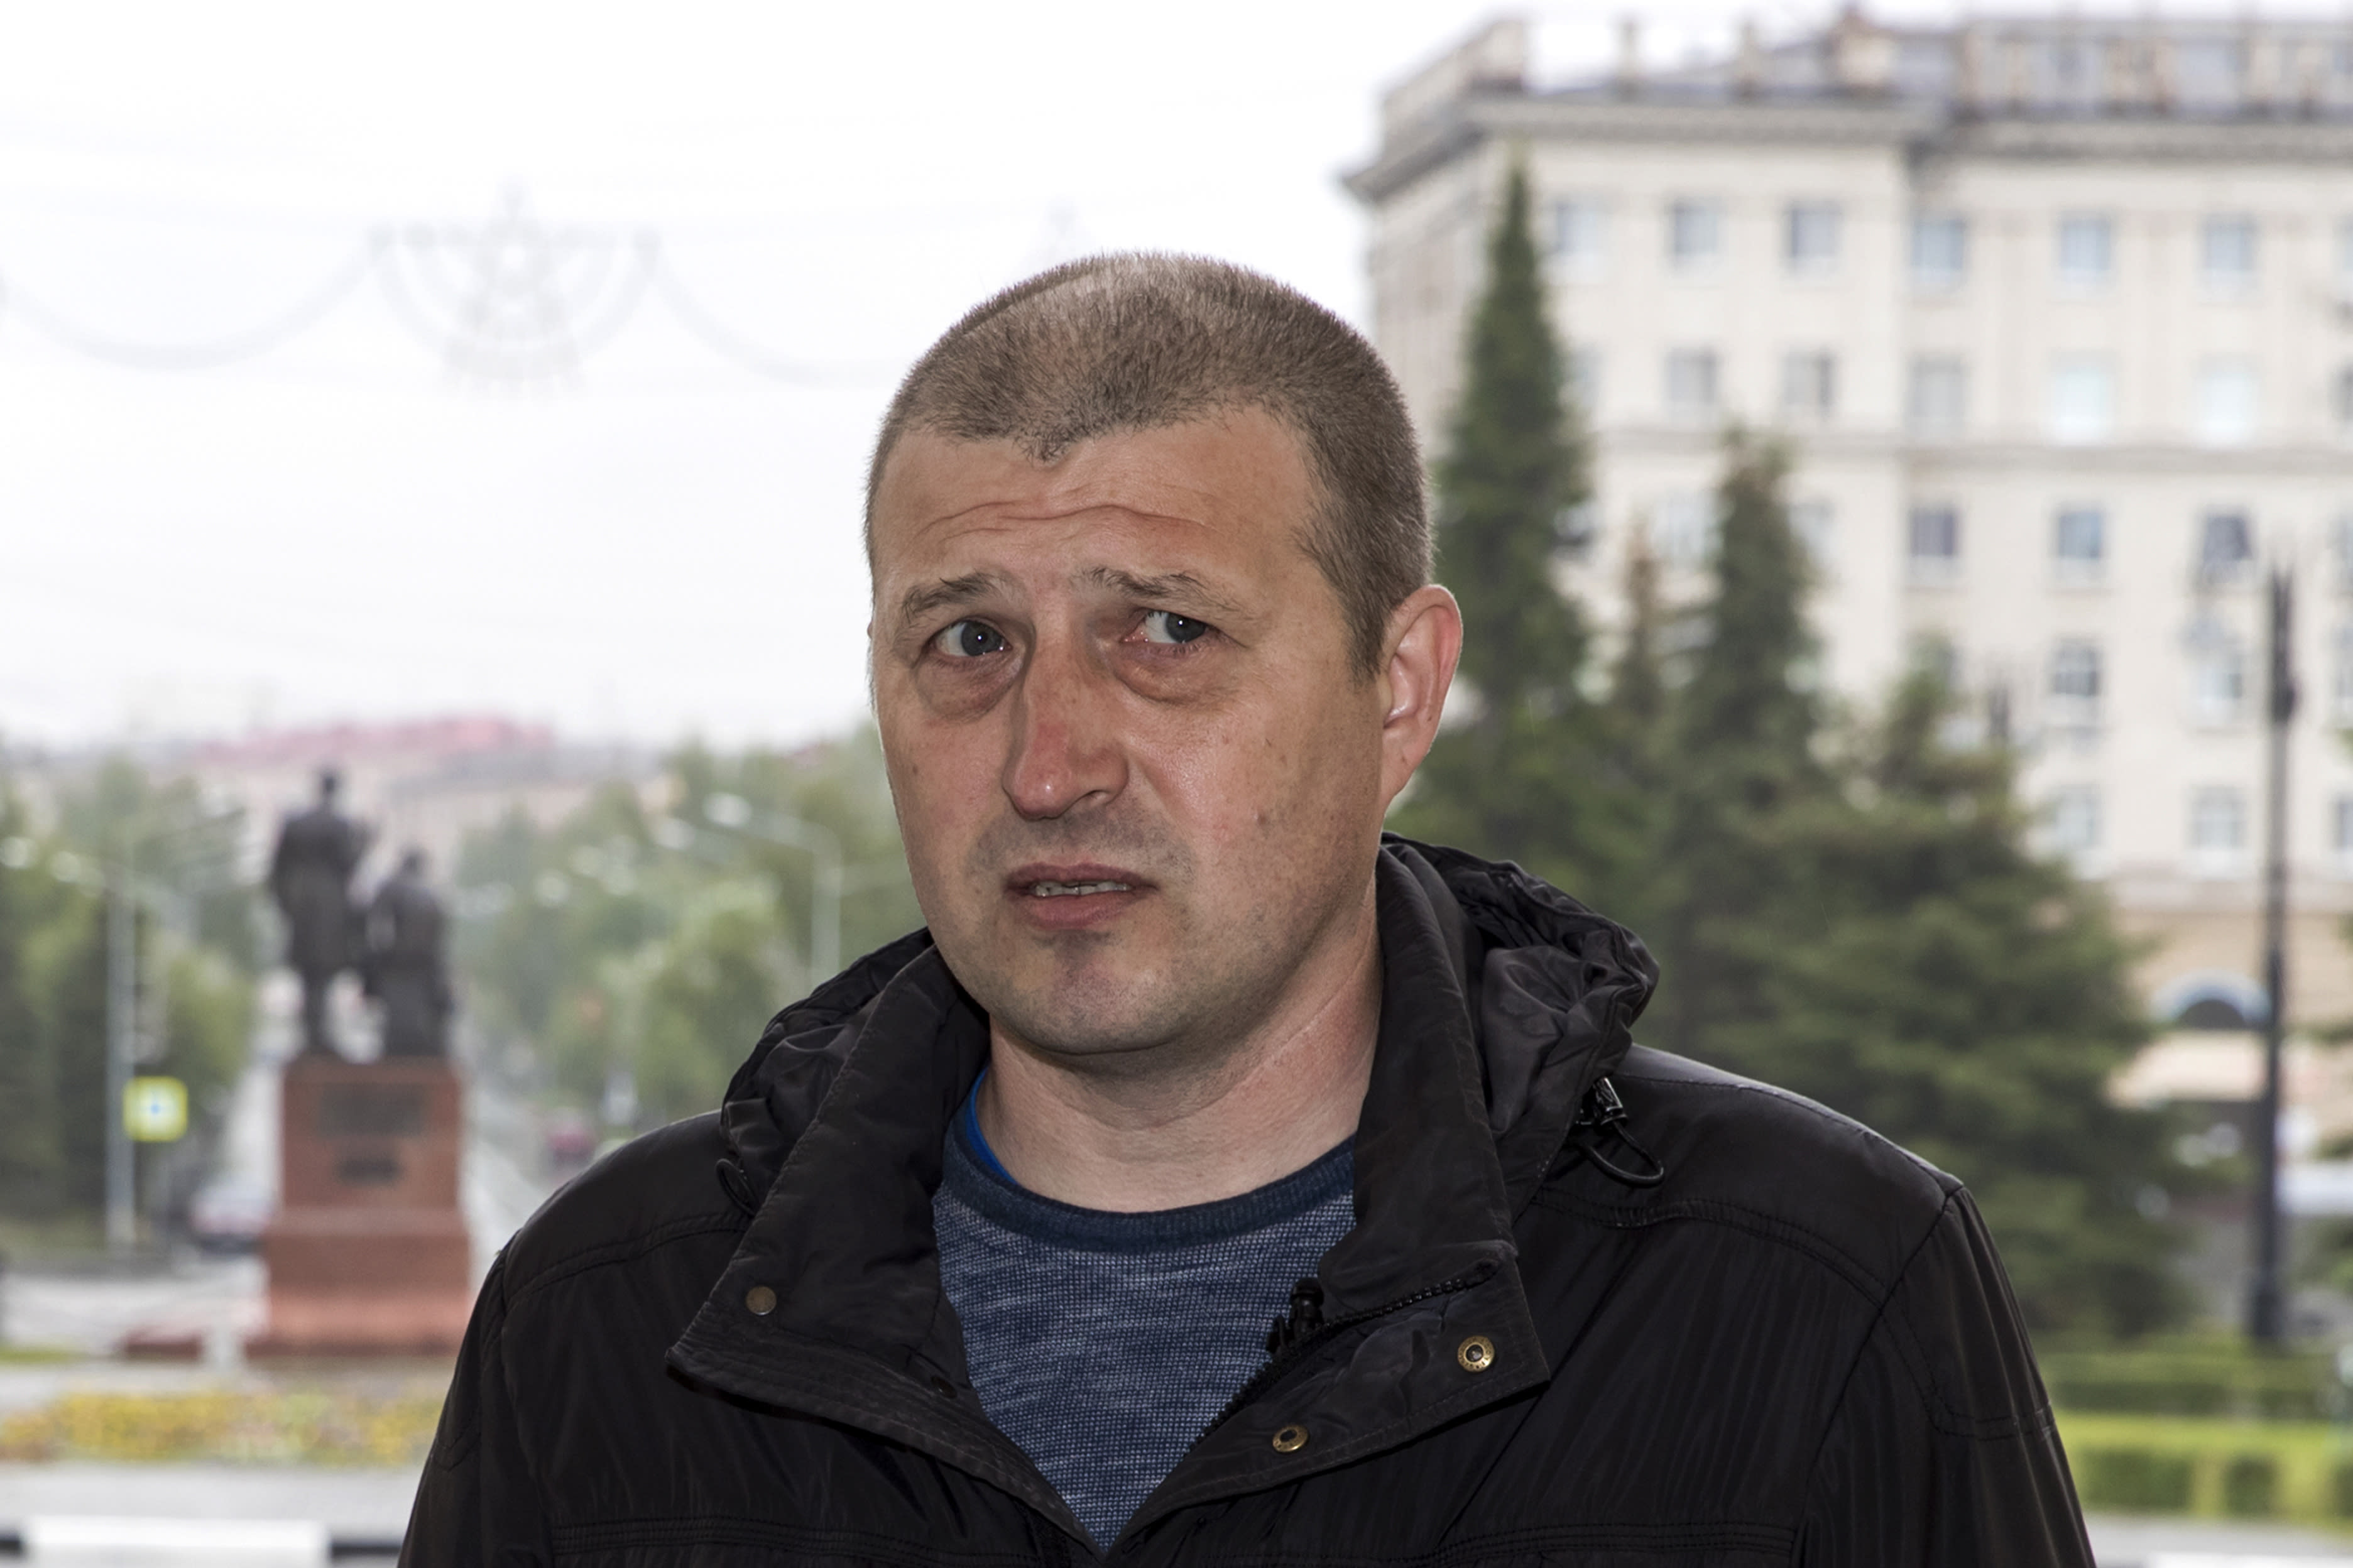 """In this photo taken on Sunday, June 28, 2020, Nikolay Nemytov, a 43-year-old engineer at Russian Railways, speaks during an interview with The Associated Press in Nizhny Tagil, some 1,400 kilometers (870 miles) east of Moscow, Russia. Workers in the city that once was seen as a Putin stronghold are speaking out against the constitutional reforms that would allow him to stay in office until 2036 amid growing frustration over their dire living conditions that have not improved. """"I am against the constitutional changes, most importantly because they are a coronation of the czar, who reigns but does not rule — Vladimir Vladimirovich Putin,"""" says Nemytov. He says his monthly salary, the equivalent of $430, is not nearly enough. (AP Photo/Anton Basanayev)"""